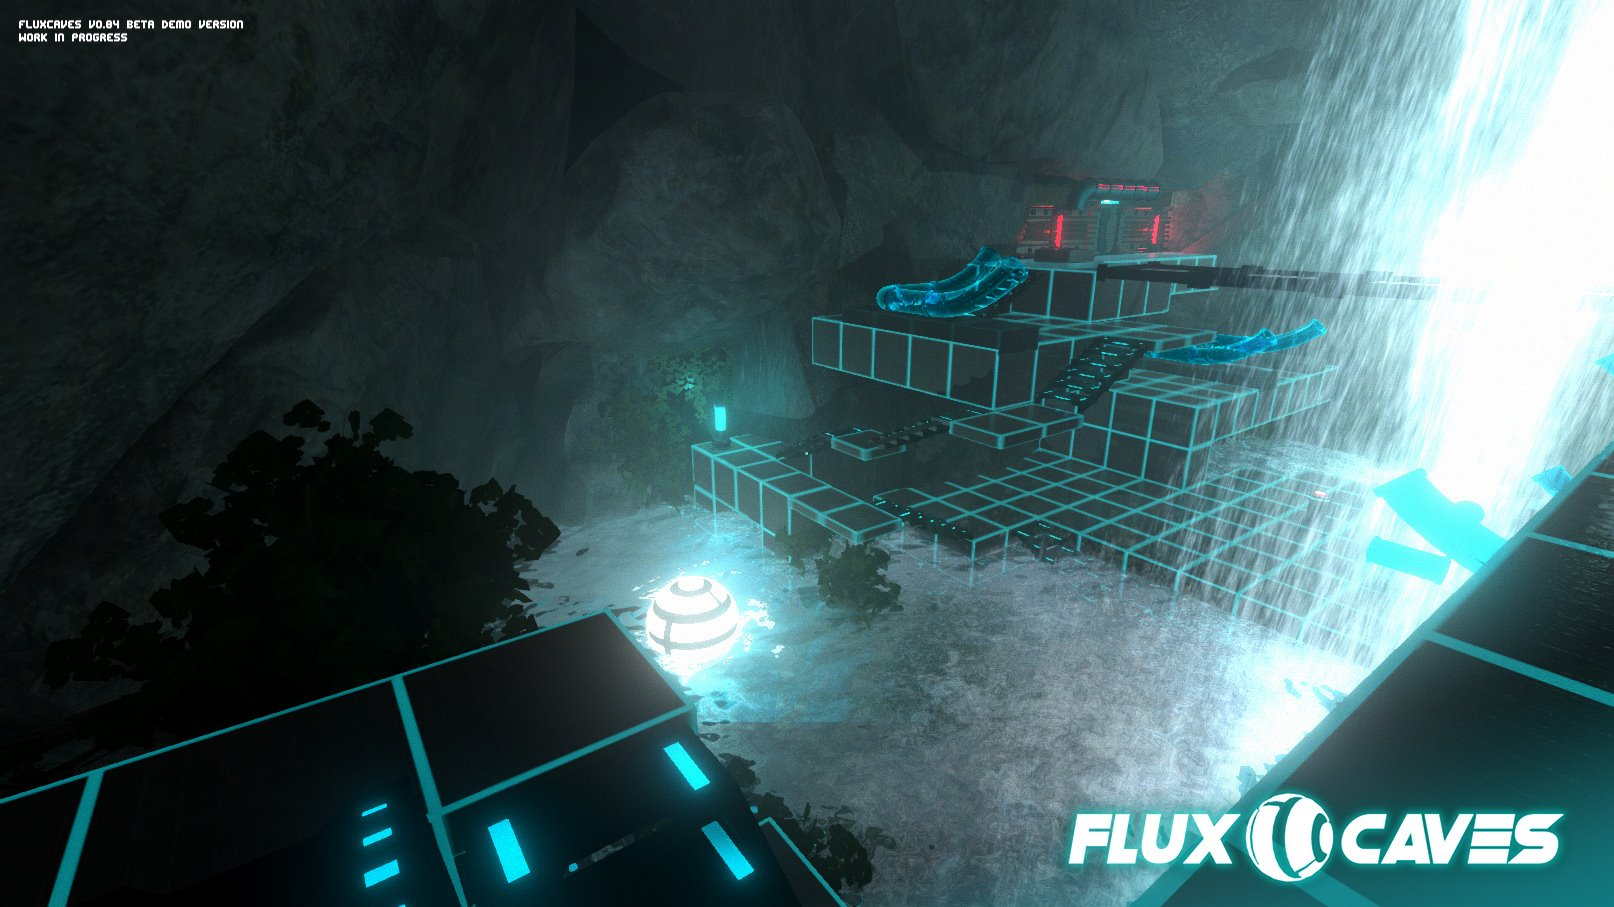 Flux Caves by fubenalvo